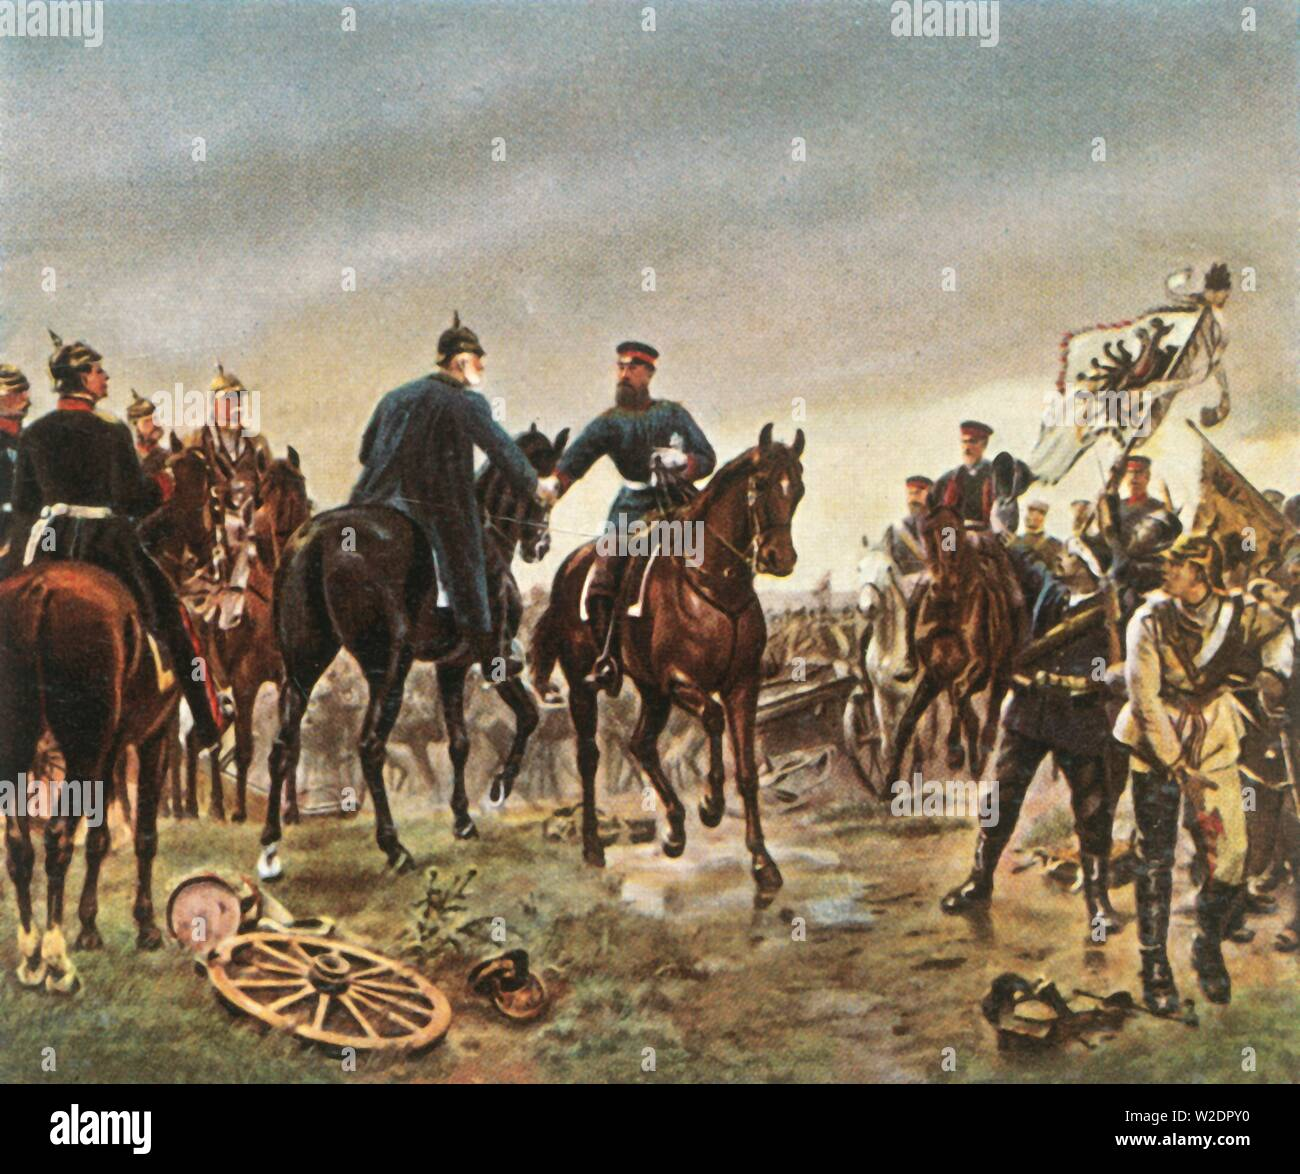 Meeting of King Wilhelm I and Crown Prince Friedrich Wilhelm at the Battle of Königgrätz, 3 July 1866, (1936). 'Begegnung König Wilhelms I Mit Kronprinz Friedrich Wilhelm In Der Schlacht Bei Königgrätz, 3 Juli 1866'. King Wilhelm I of Prussia, Emperor of Germany (1797-1888) meets his son Friedrich Wilhelm (1831-1888, future German Emperor and King of Prussia Frederick III). The Battle of Königgrätz took place near Königgrätz in Bohemia (modern-day Hradec Králové in the Czech Republic). It was the decisive battle of the Austro-Prussian War - Stock Image